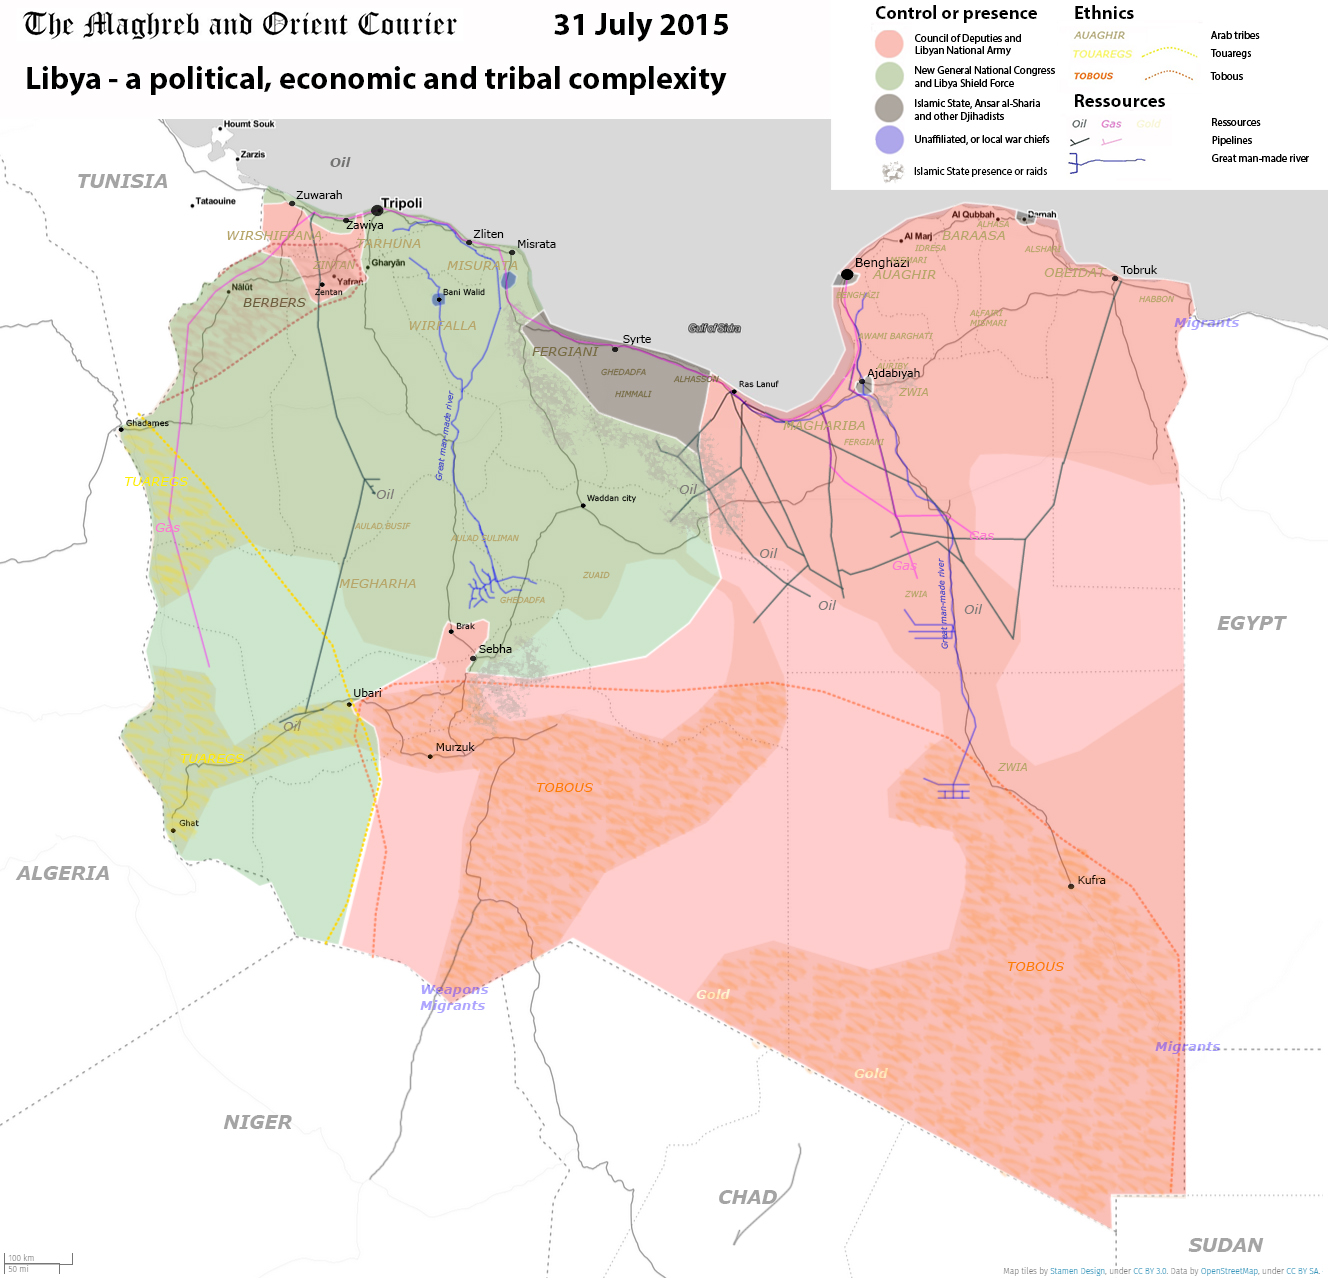 ARAB WORLD MAPS - July-August 2015 - Emmanuel PÈNE